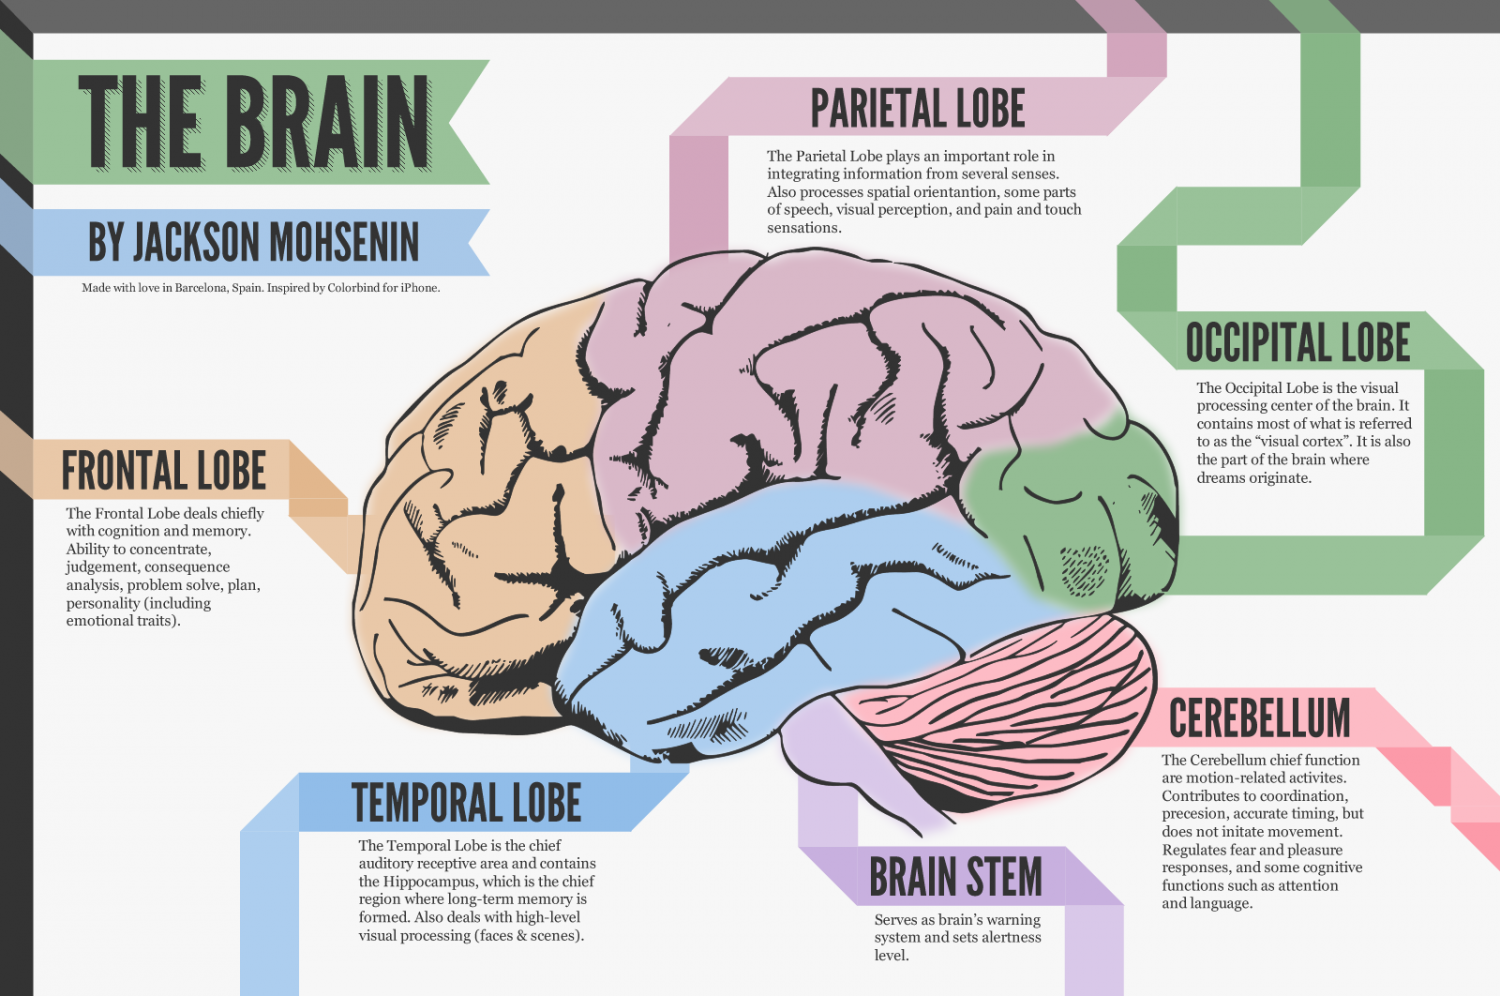 a look at the brain | visual.ly, Human Body